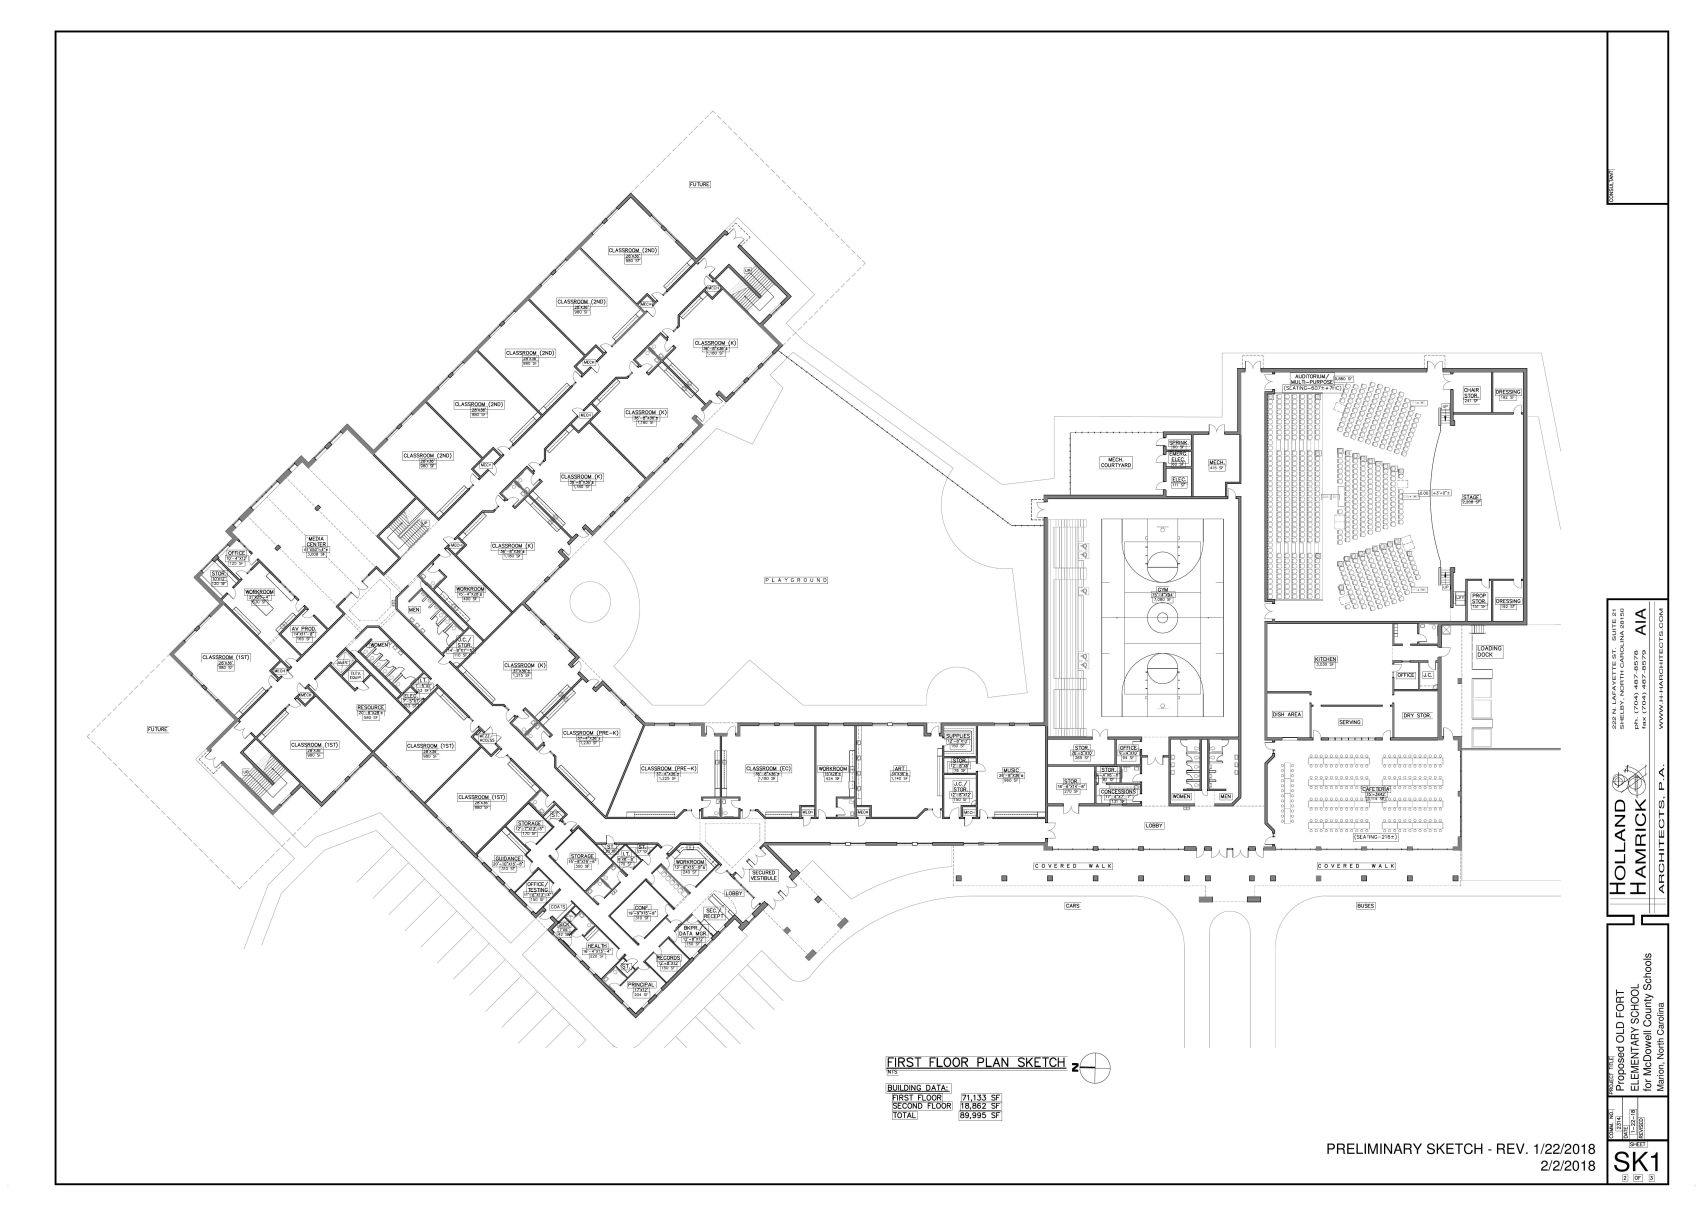 Floor plans unveiled in Old Fort School project